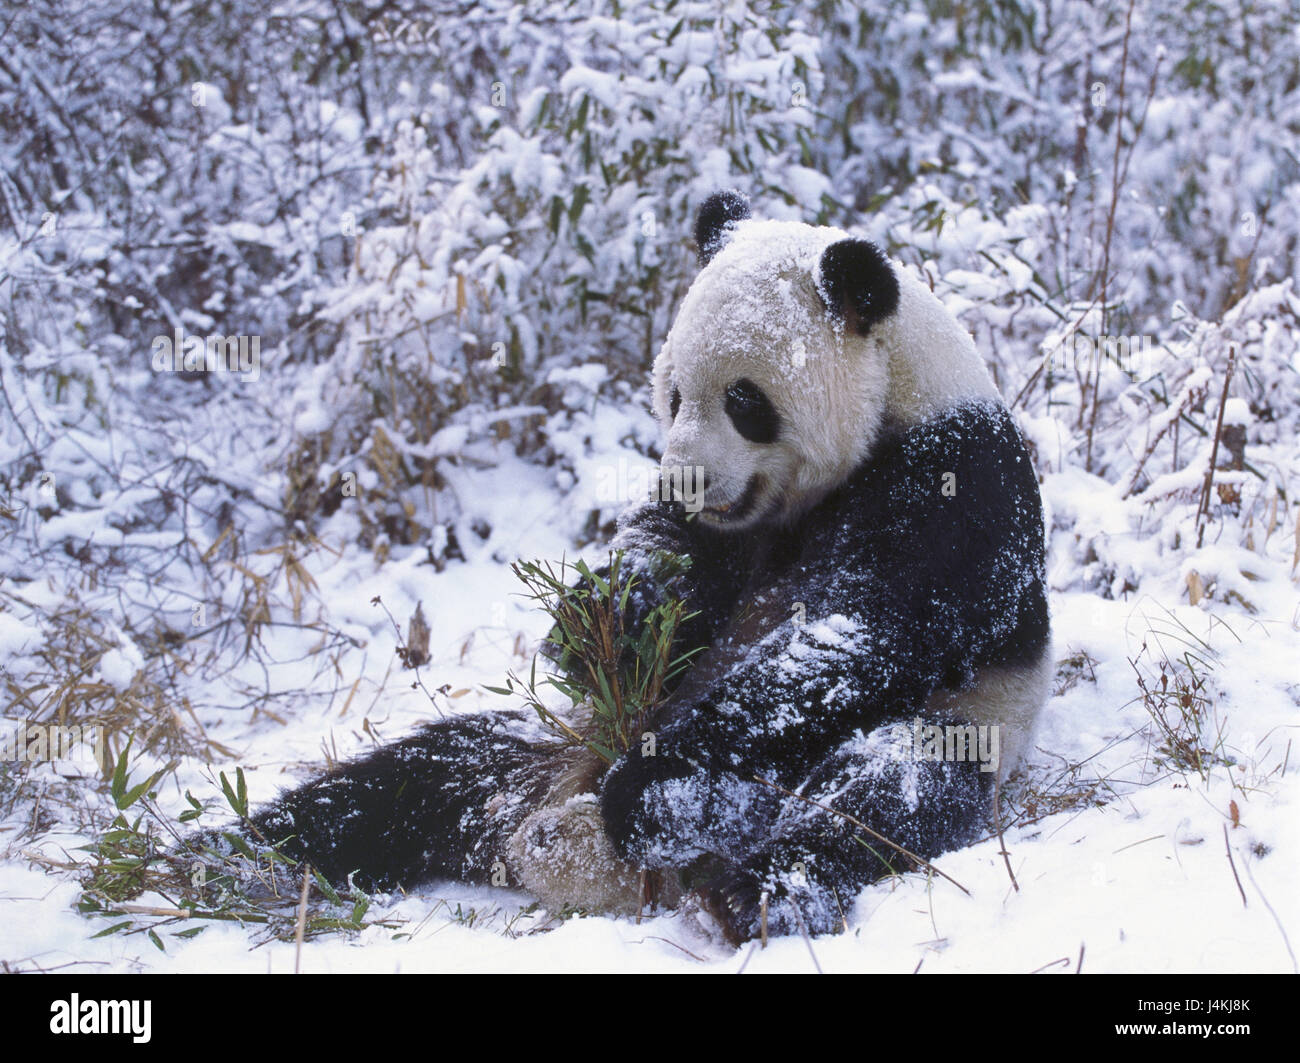 Wood, big panda, Ailuropoda melanoleuca, sit, bamboo, ingestion, winter animal world, wilderness, Wildlife, animal, - Stock Image